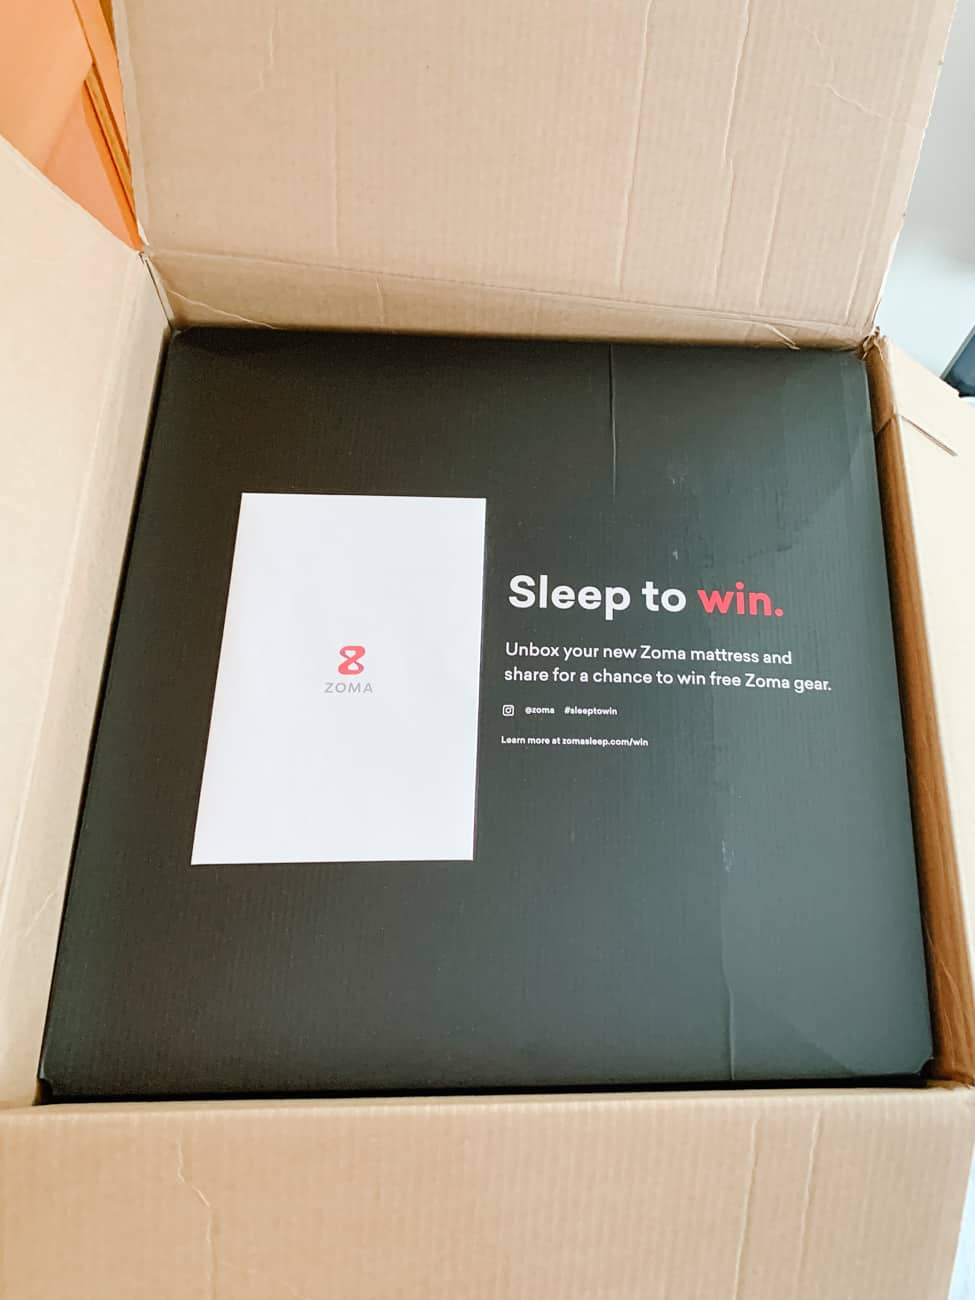 Top of the box from a Zoma mattress with text reading Sleep to Win